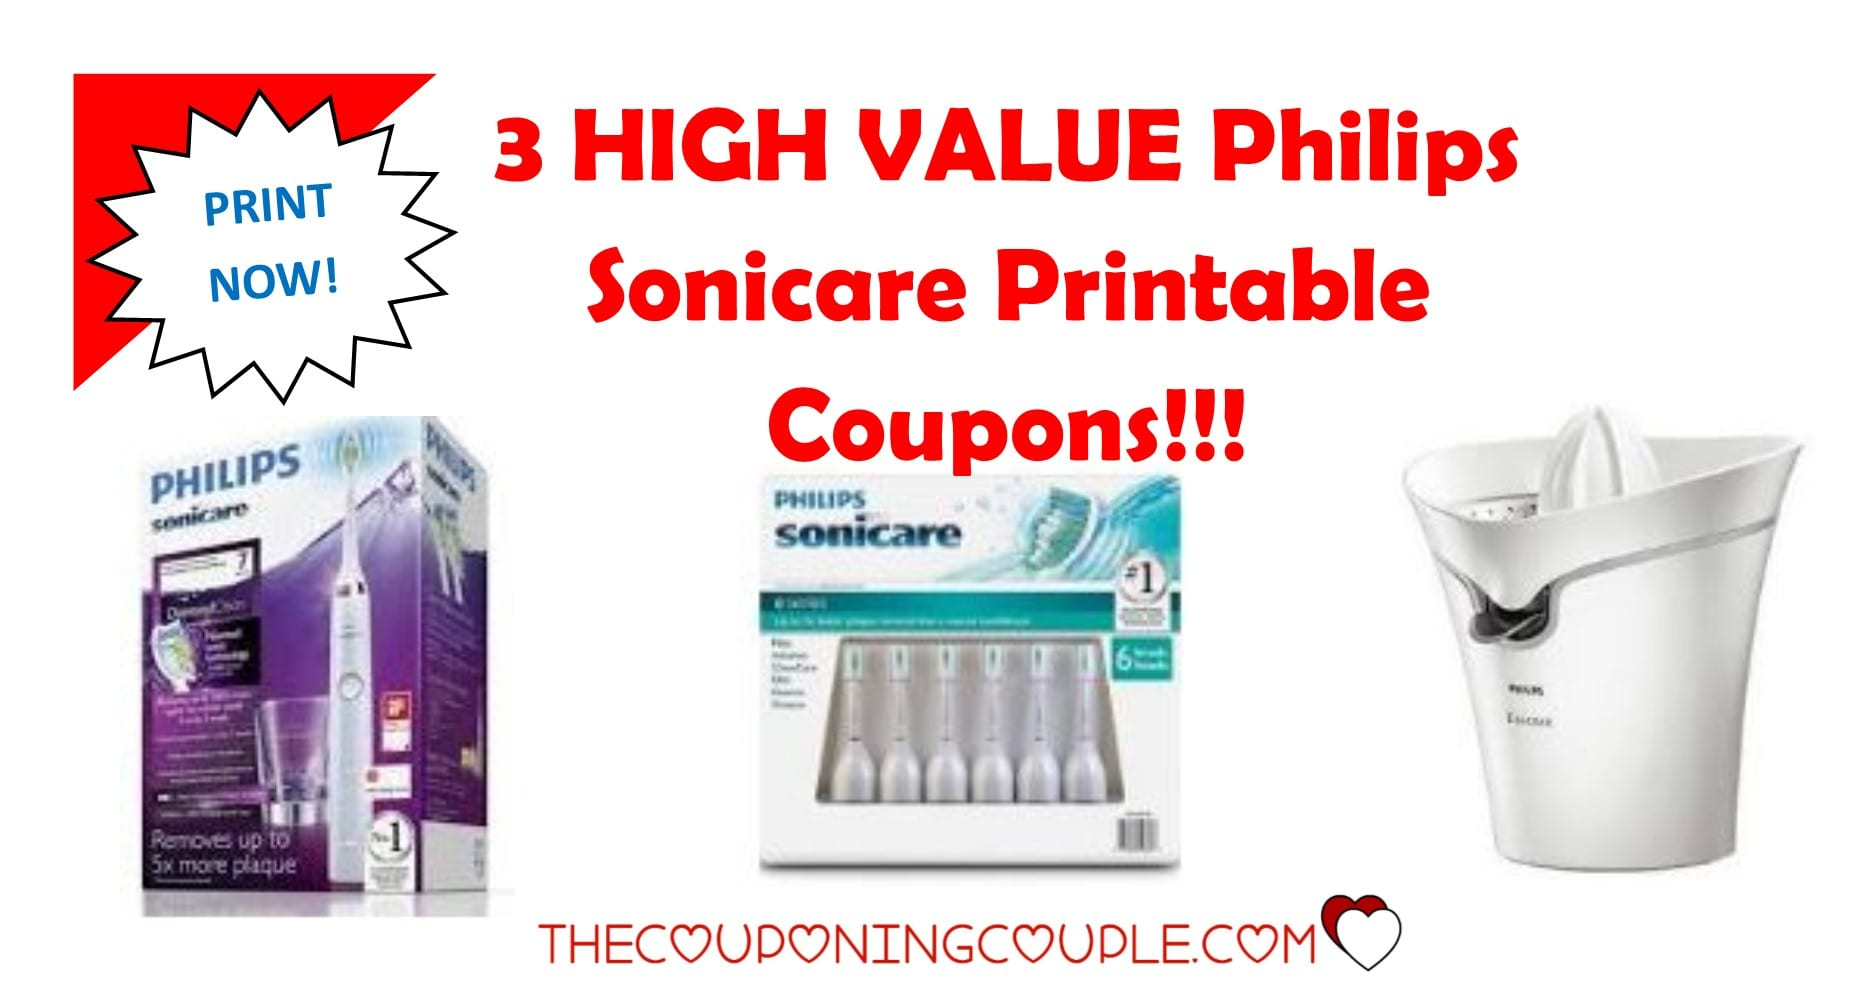 philips coupons printable